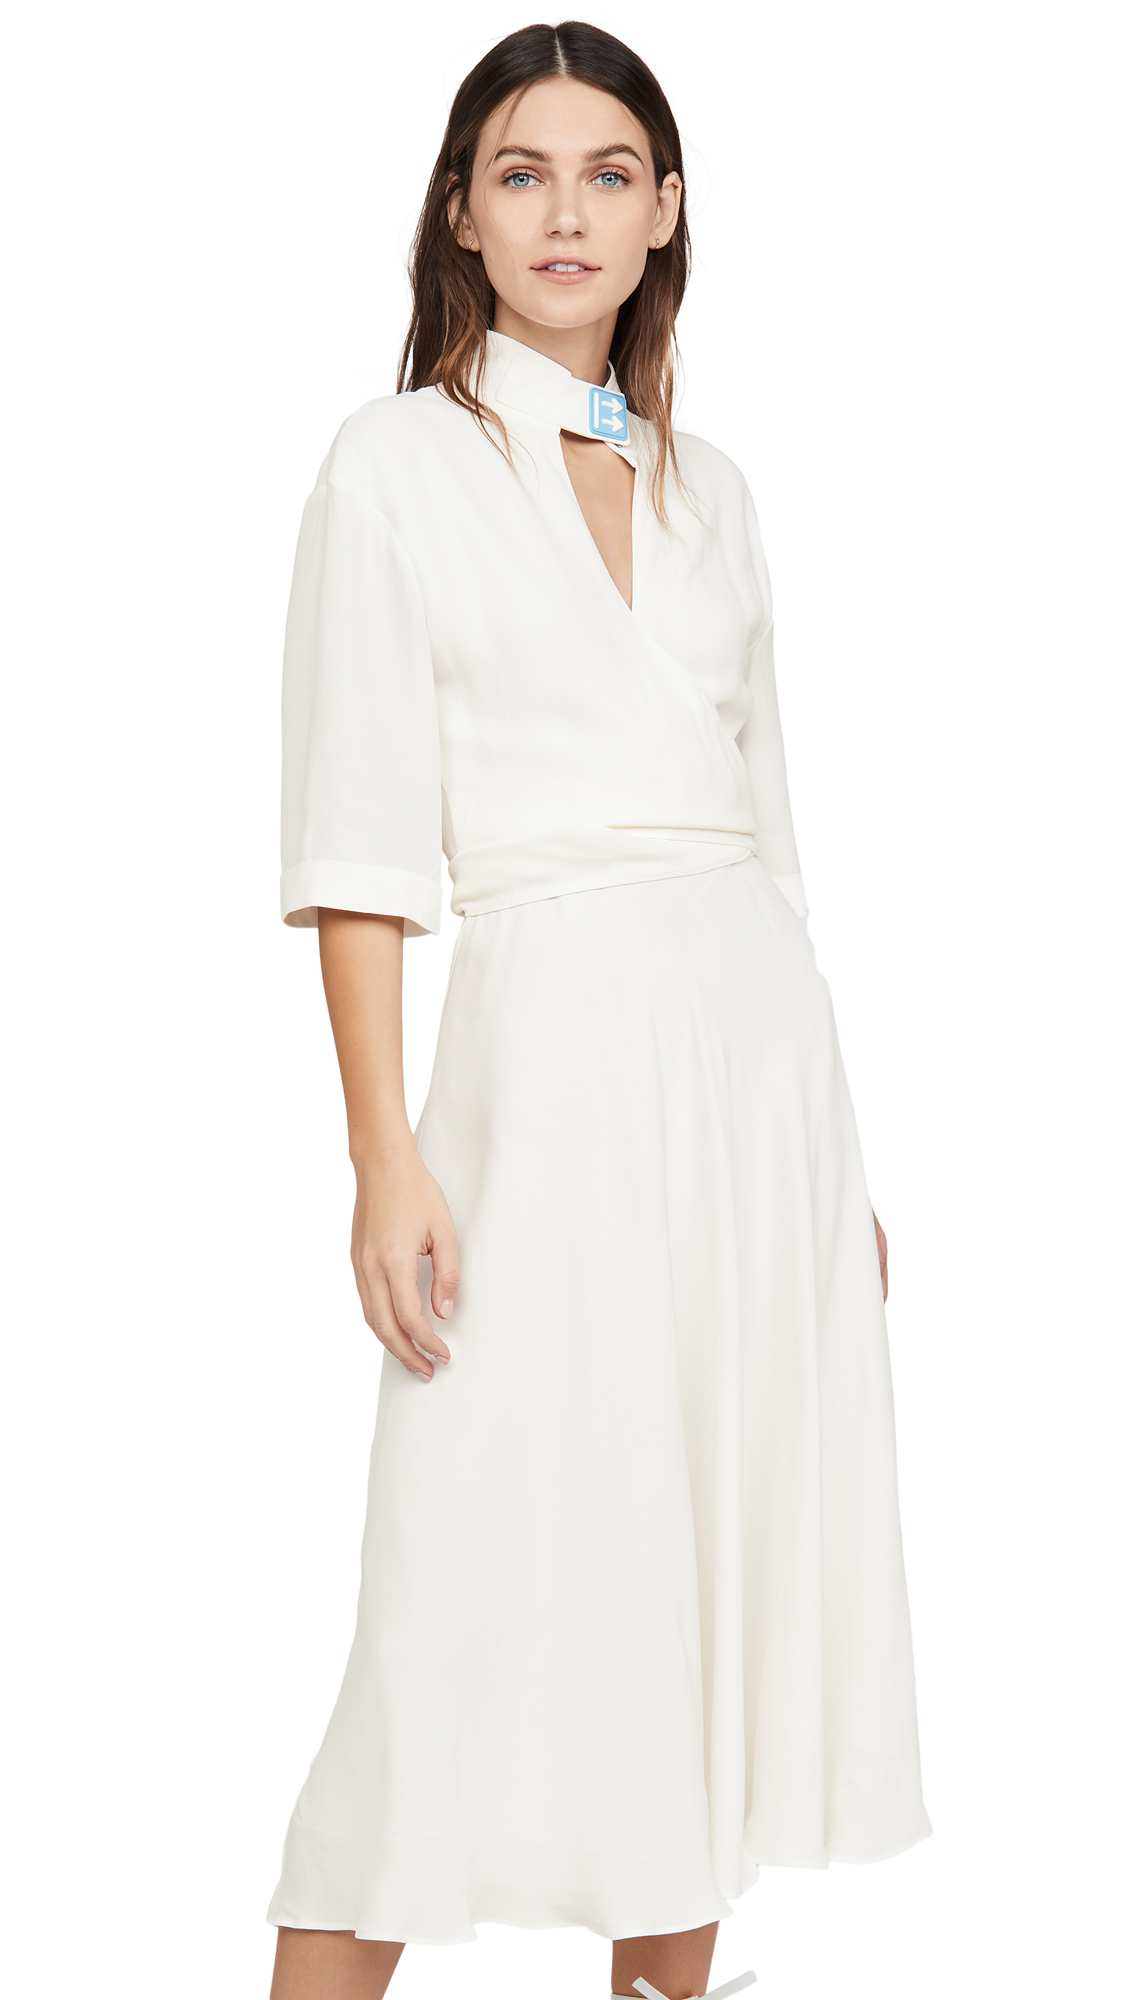 Off-White Crepe Romantic Dress - 60% Off Sale